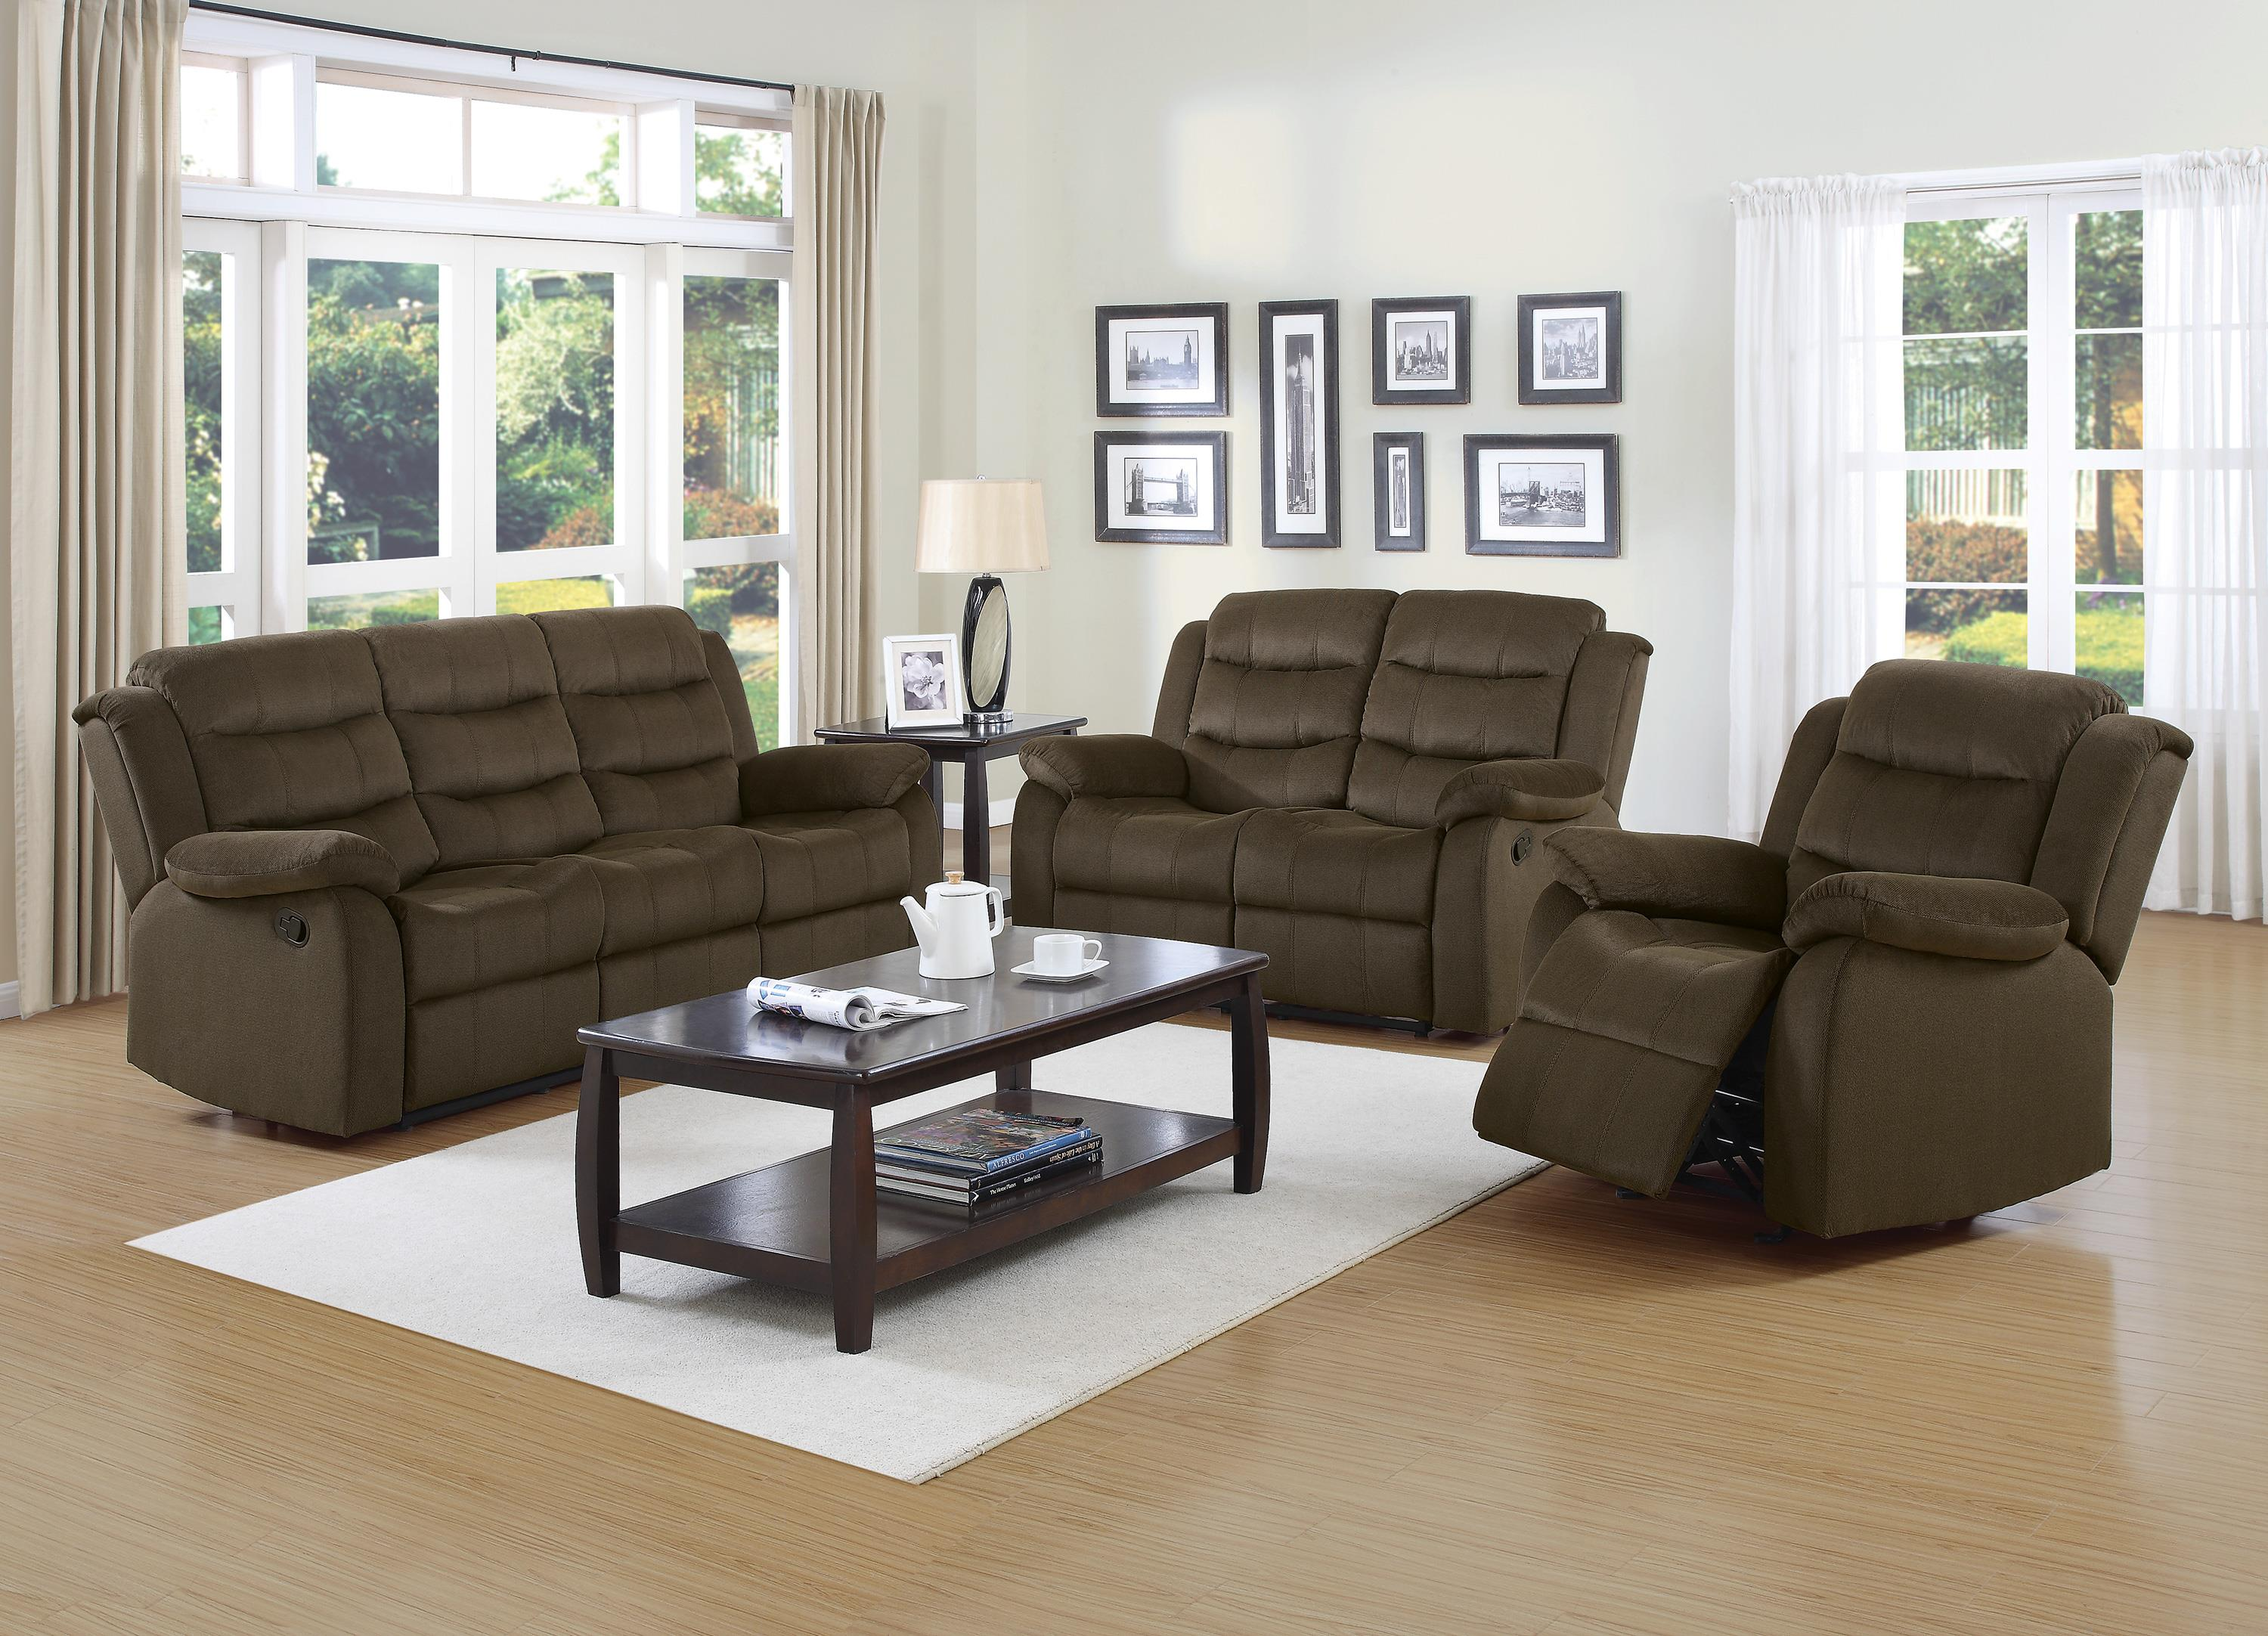 Furniture For Living Rooms: Coaster Rodman Reclining Living Room Group